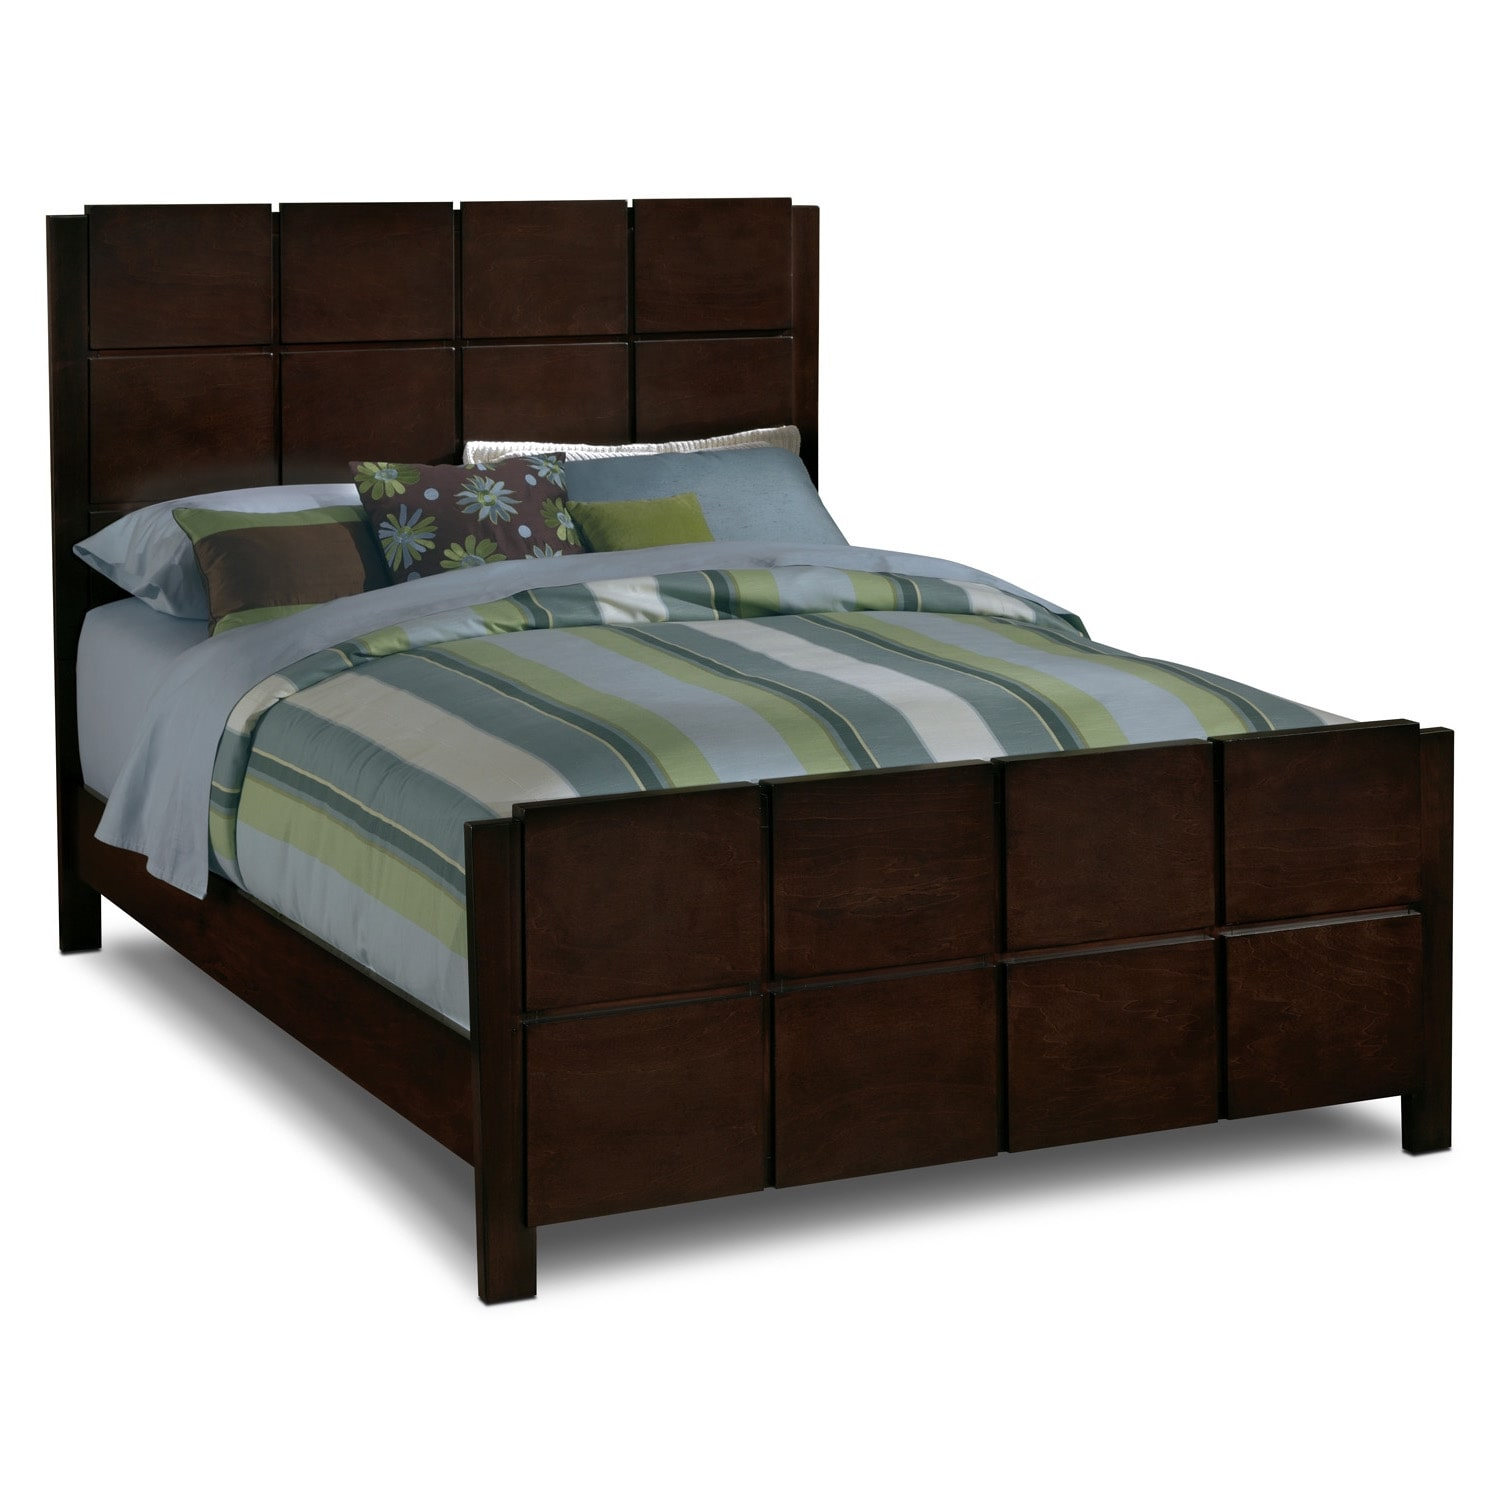 Mosaic 6 pc king bedroom american signature furniture for Signature furniture